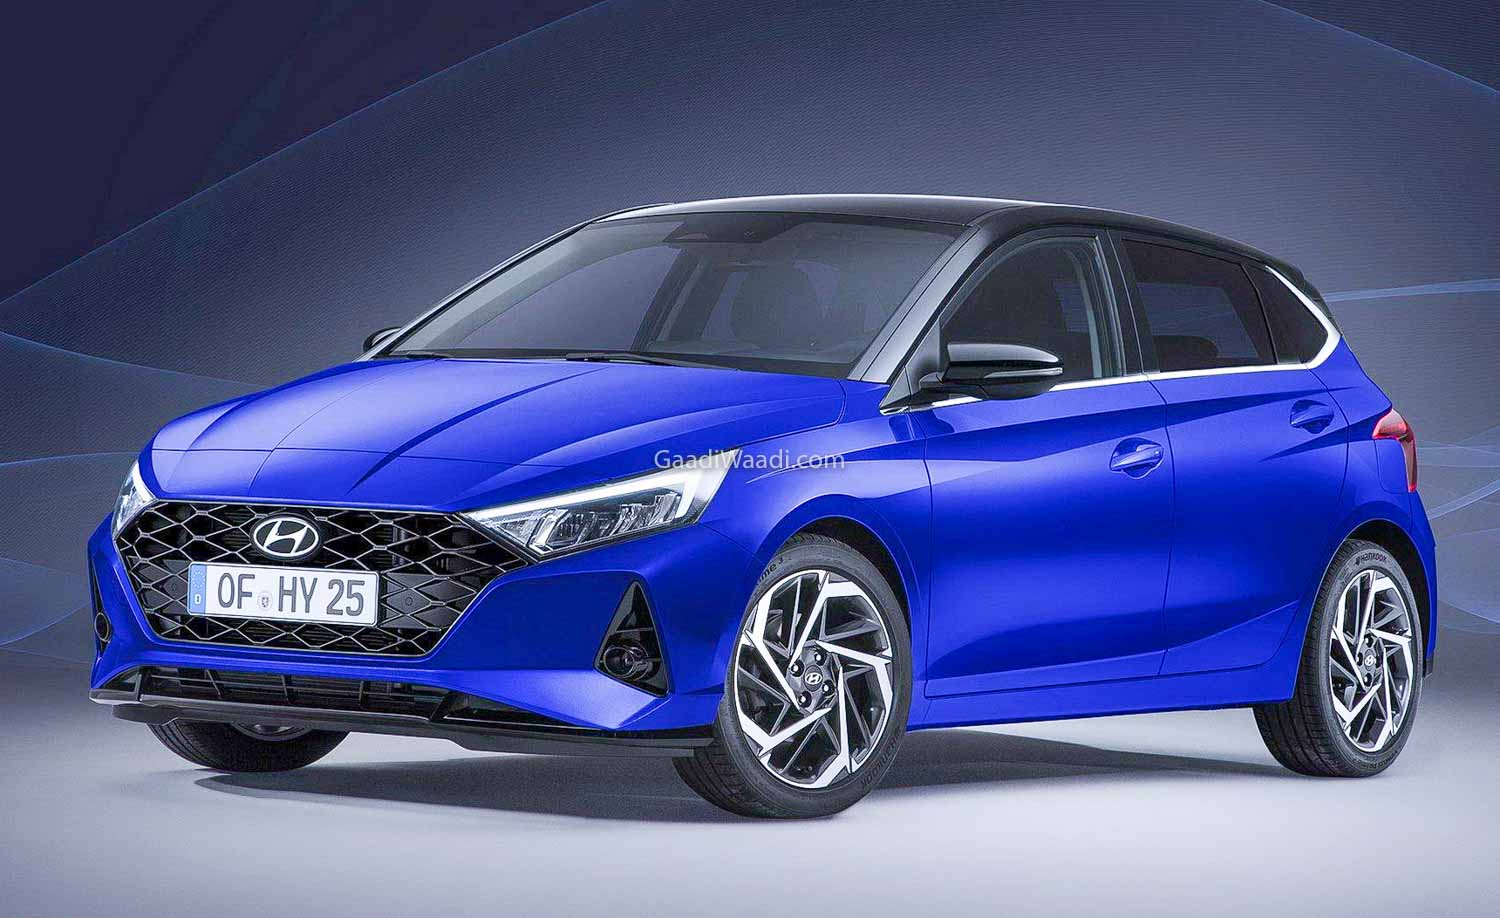 Upcoming 2020 Hyundai i20 Interior & Exterior Revealed, Debut In March - GaadiWaadi.com thumbnail